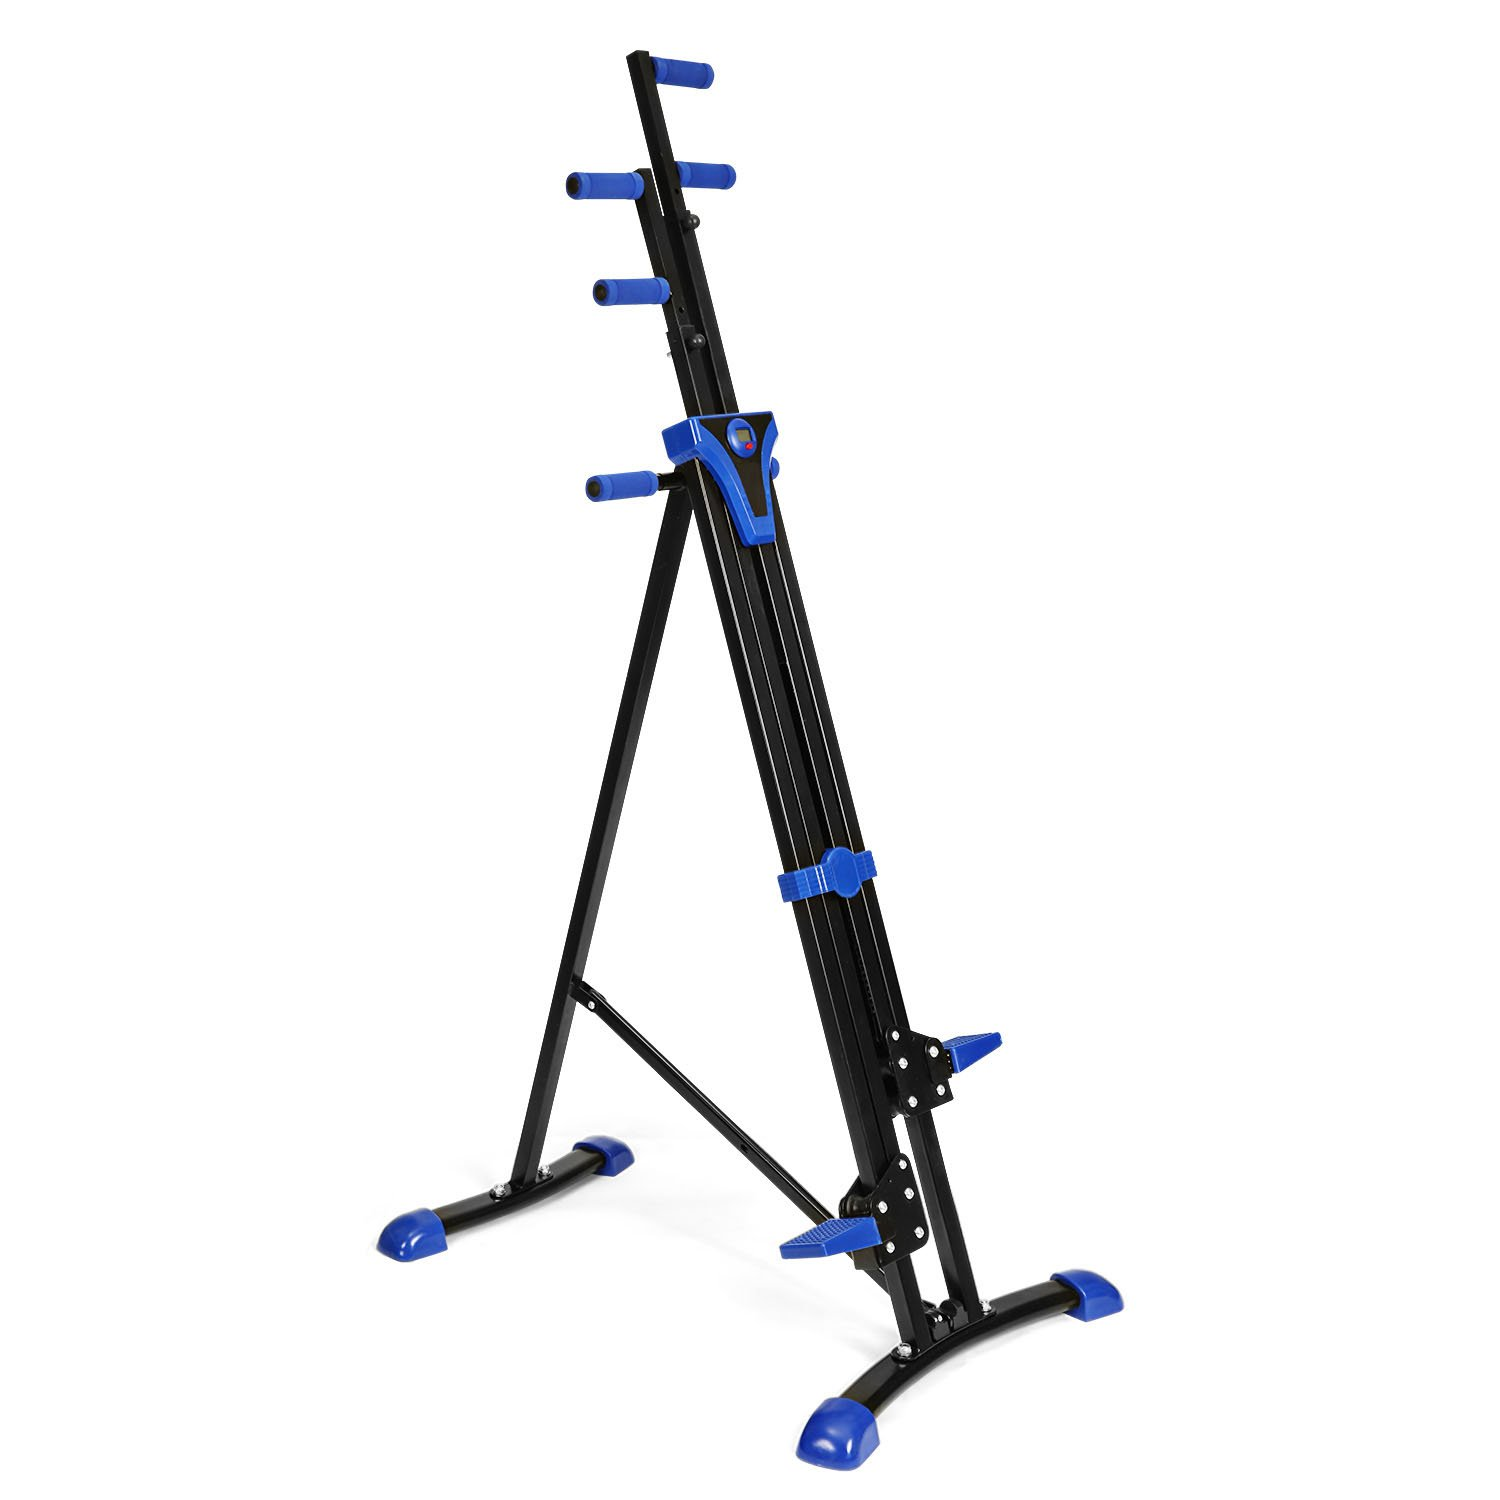 Anfan Vertical Climber, Fitness Climbing Machine, Folding Cardio Stair Exercise Step Machine for Home Gym ( US STOCK)